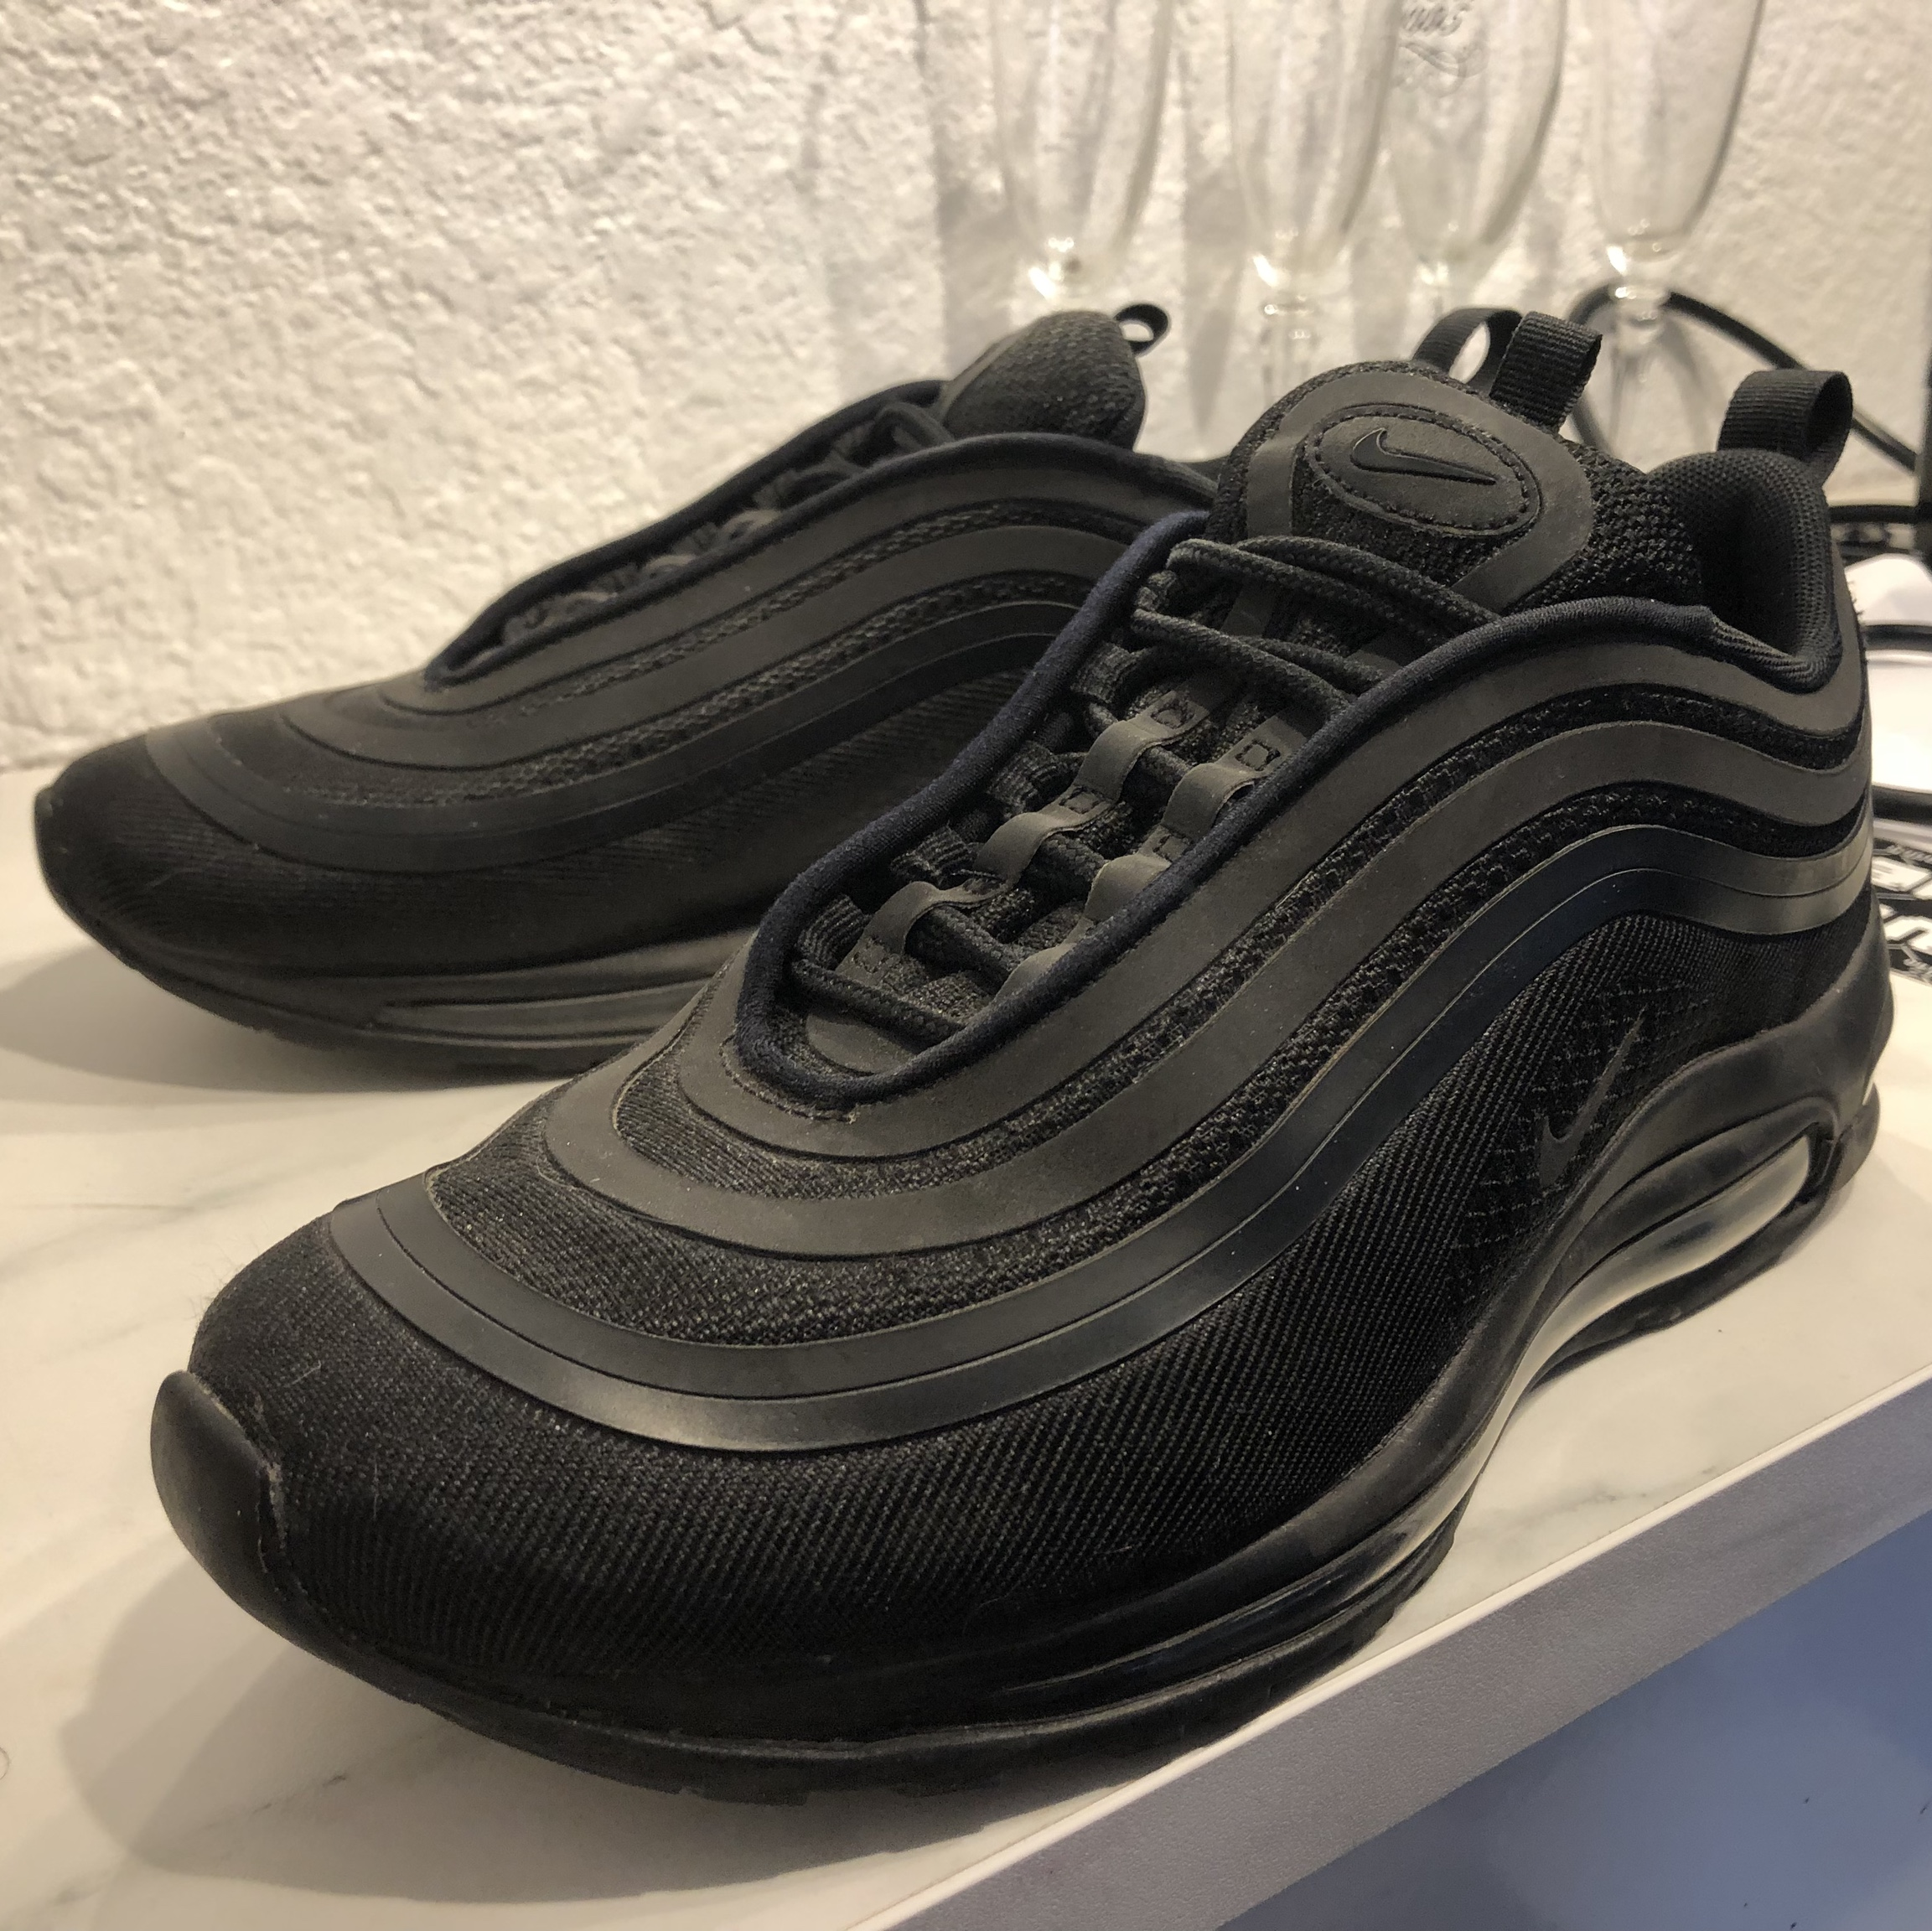 new style 99a6a e8e91 Nike Air Max 97 Ultra 17 Triple Black Men's Size 8... - Depop